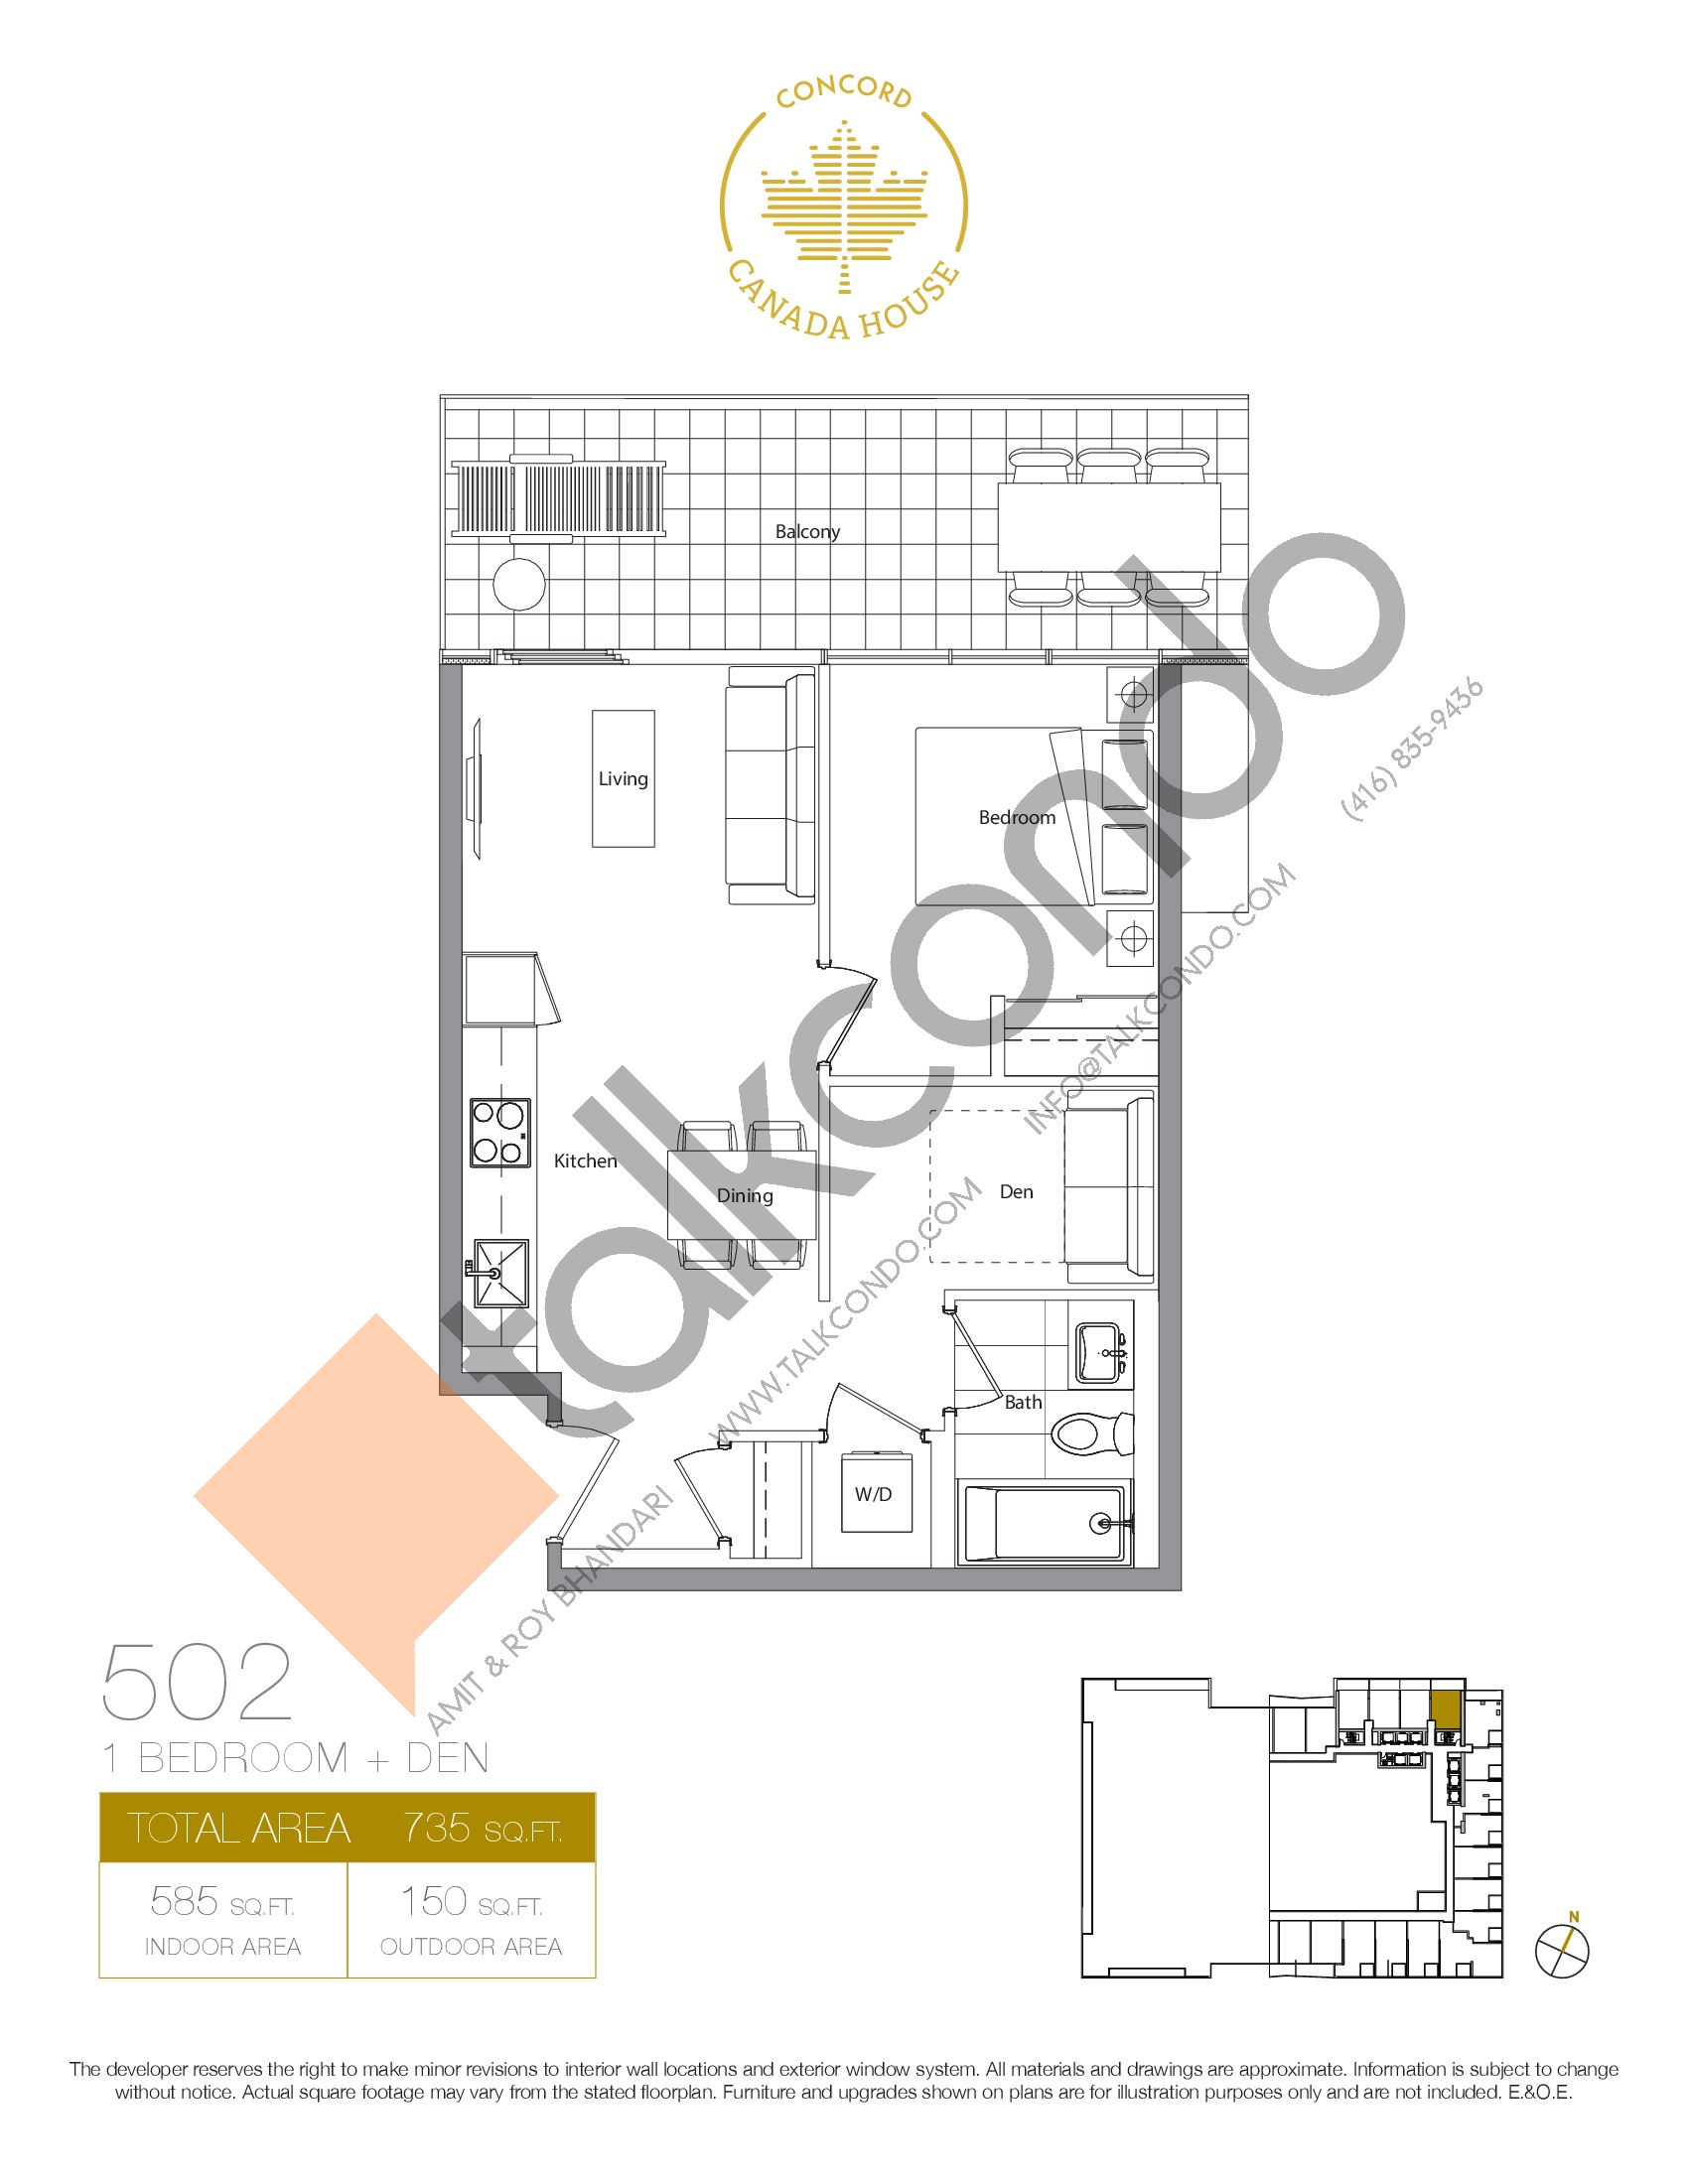 502 - West Tower Floor Plan at Concord Canada House Condos - 585 sq.ft